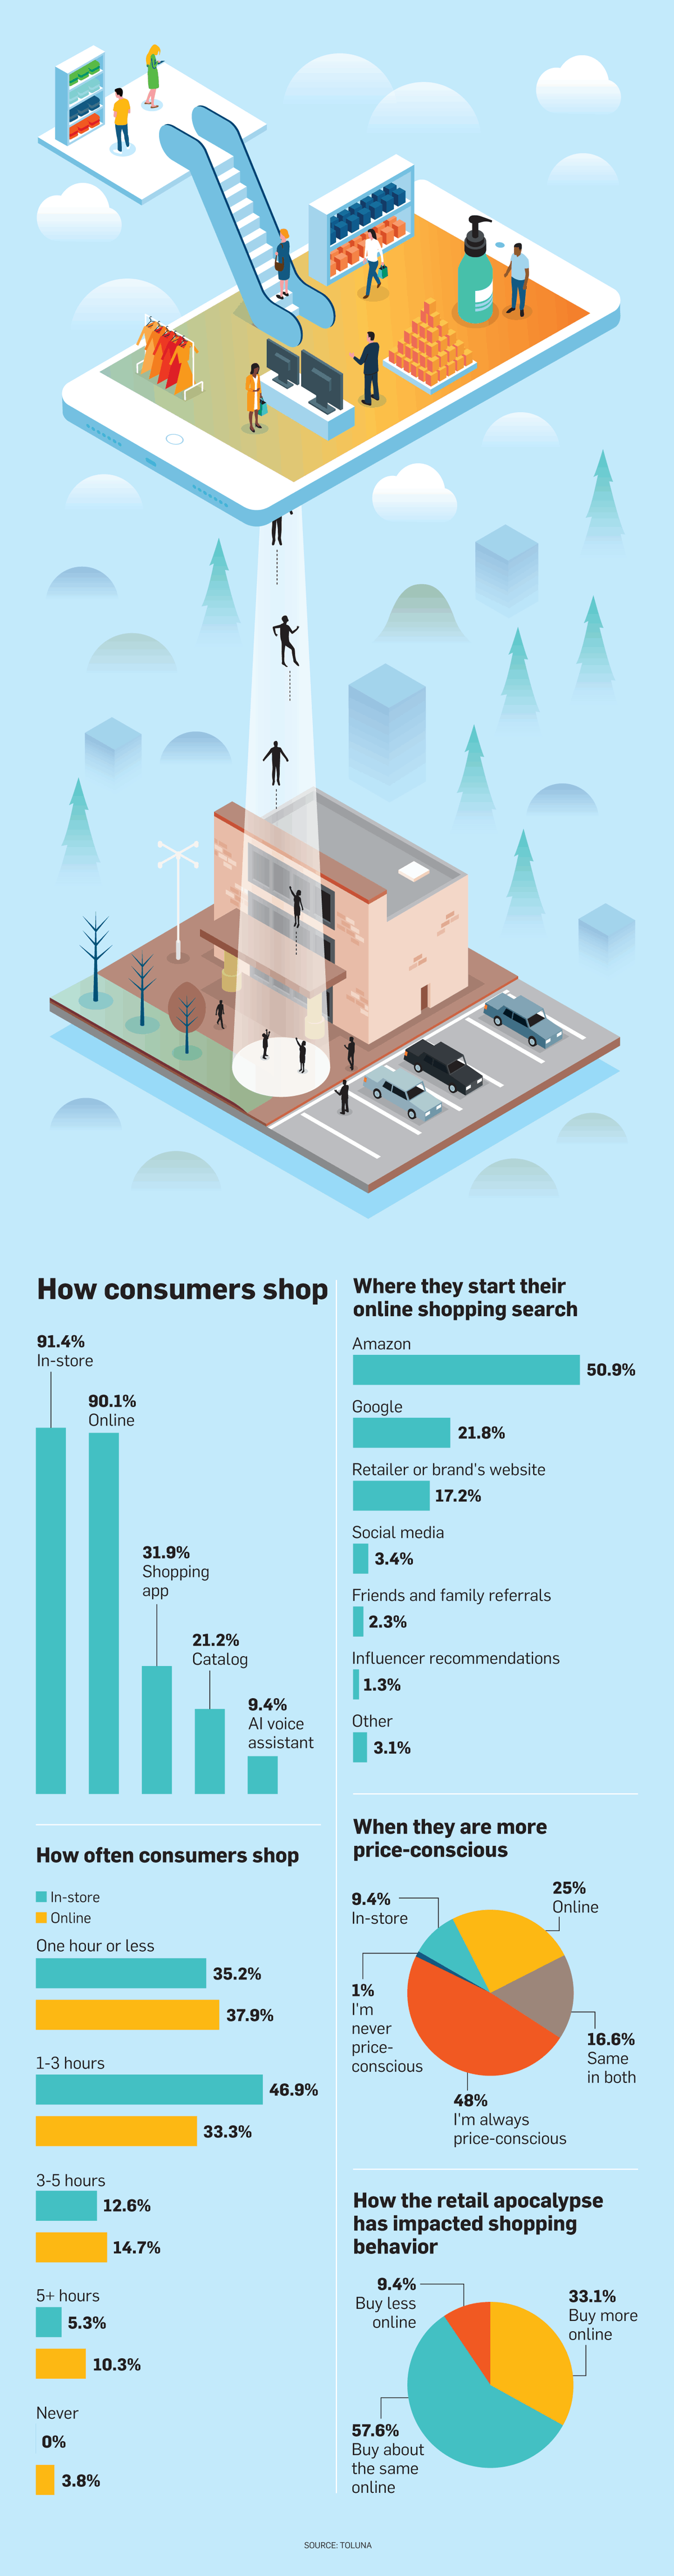 Over Half of Consumers Start Their Online Shopping on Amazon – Adweek